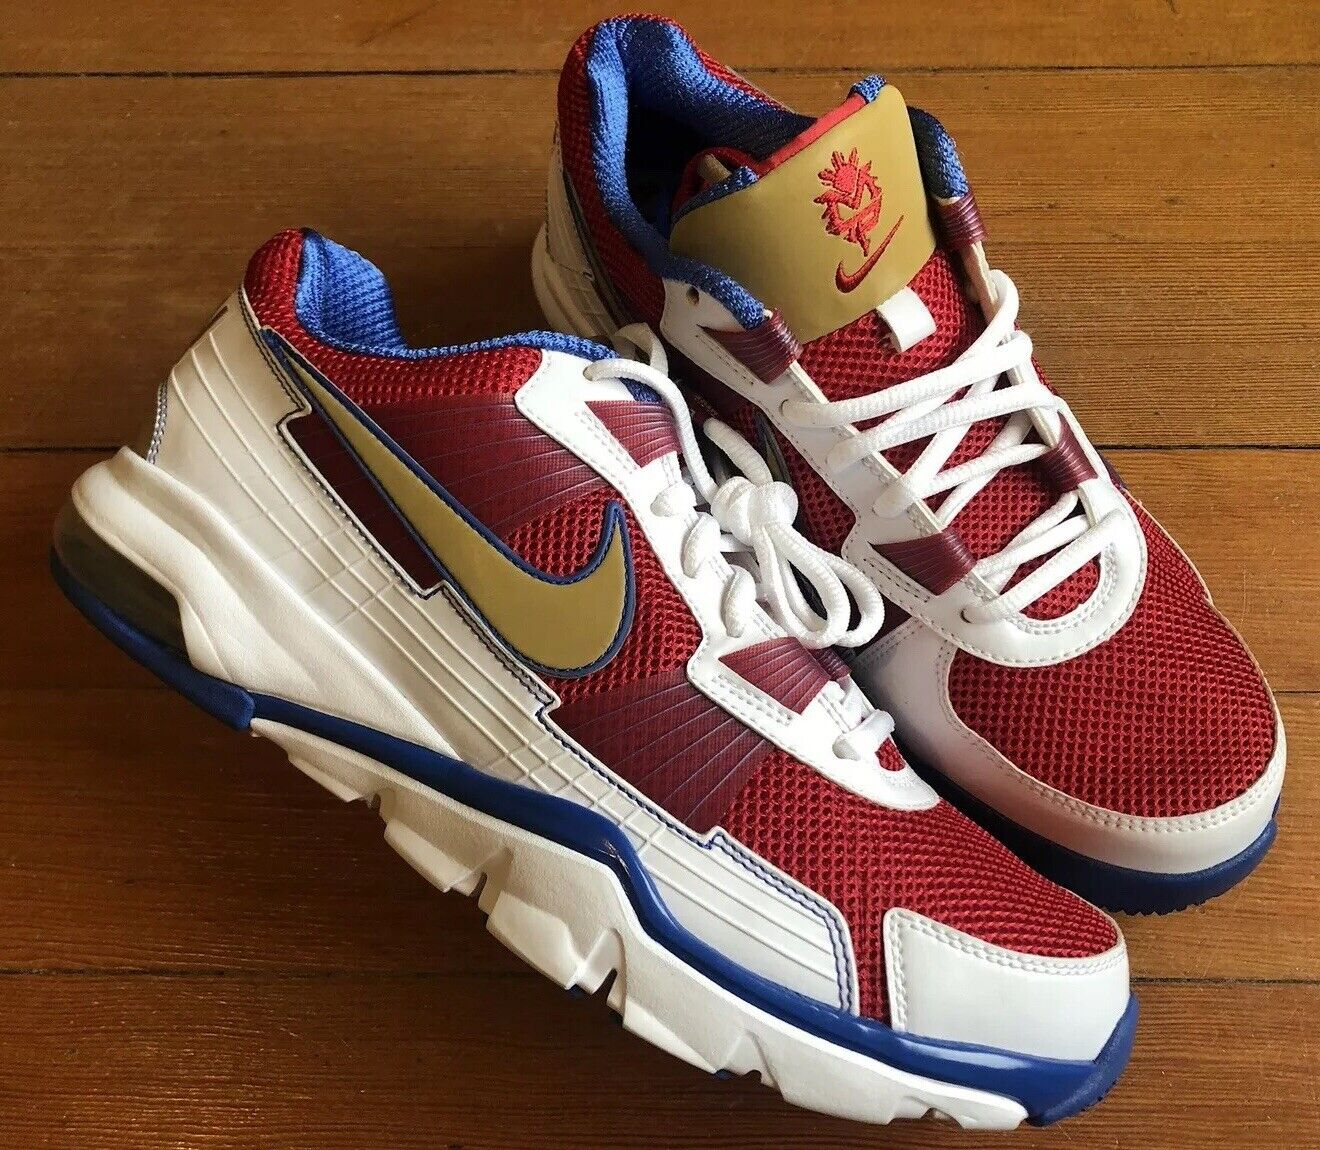 Nike Manny Pacquiao Trainer PacMan 2010 SC Low 407846–176 407846–176 407846–176 Mismatch 8.5 & 9.5 31ae6a